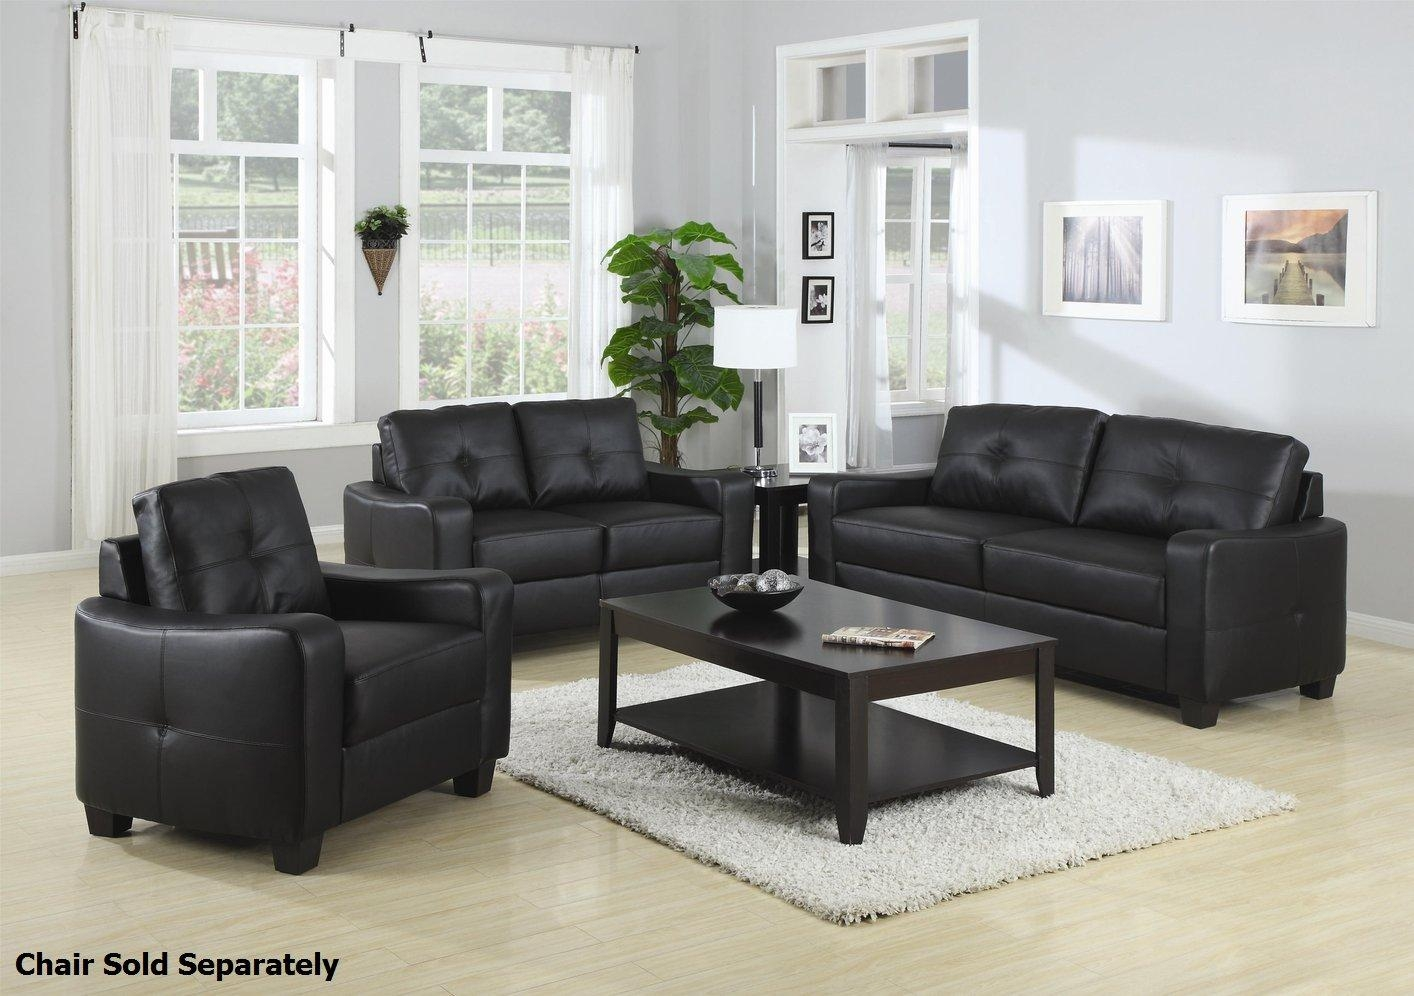 Jasmine Black Leather Sofa And Loveseat Set - Steal-A-Sofa in Black Leather Sofas and Loveseat Sets